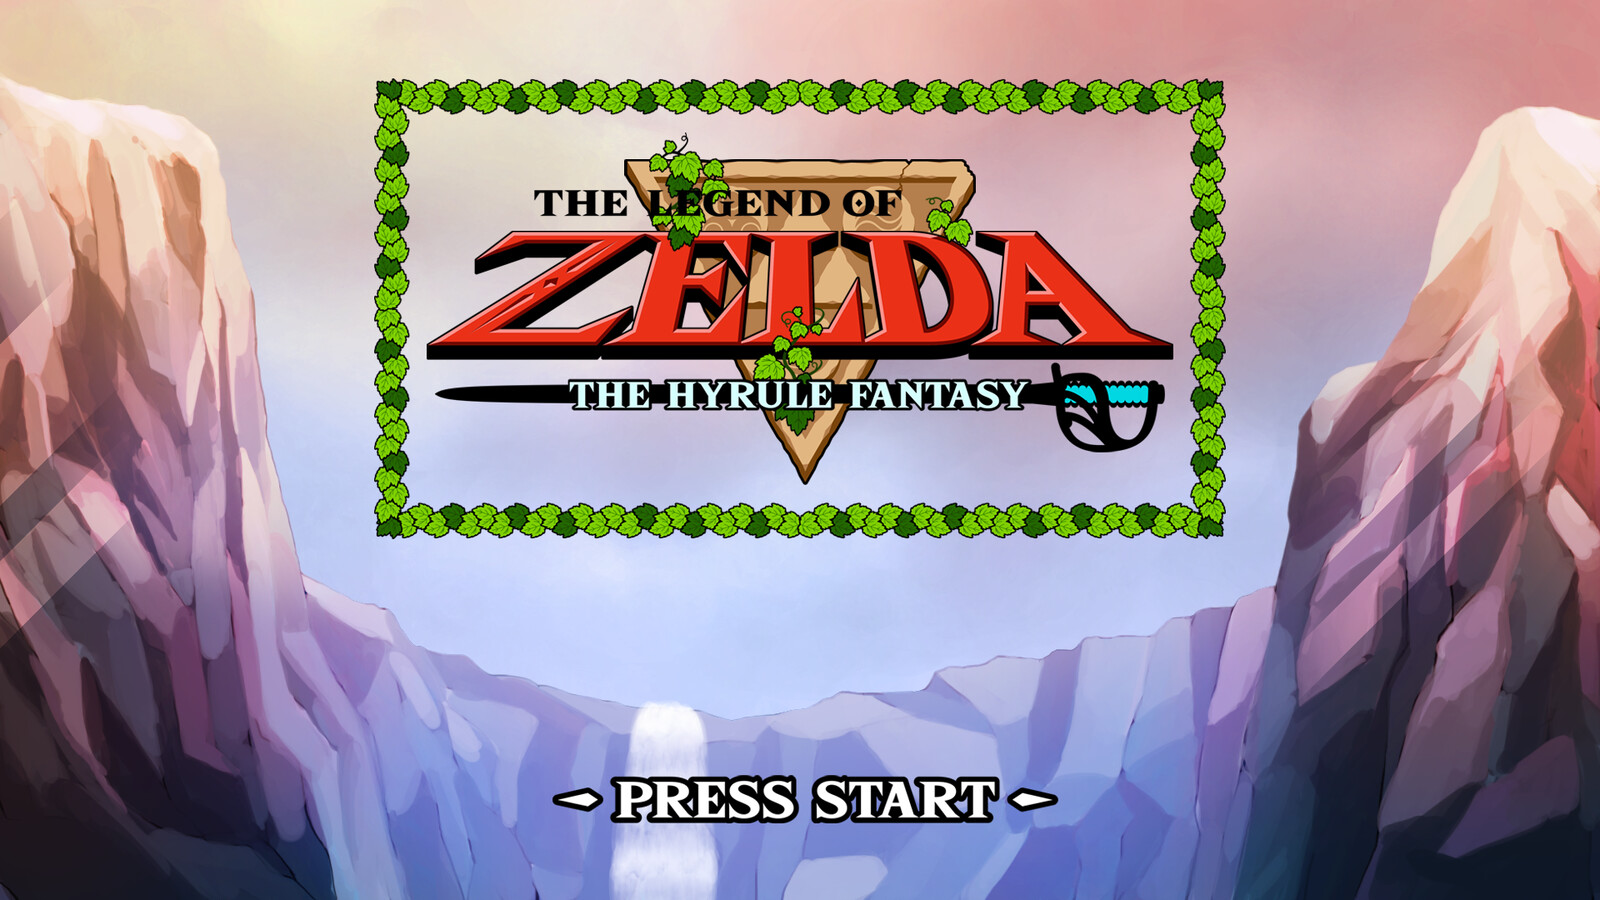 The Legend of Zelda: The Hyrule Fantasy